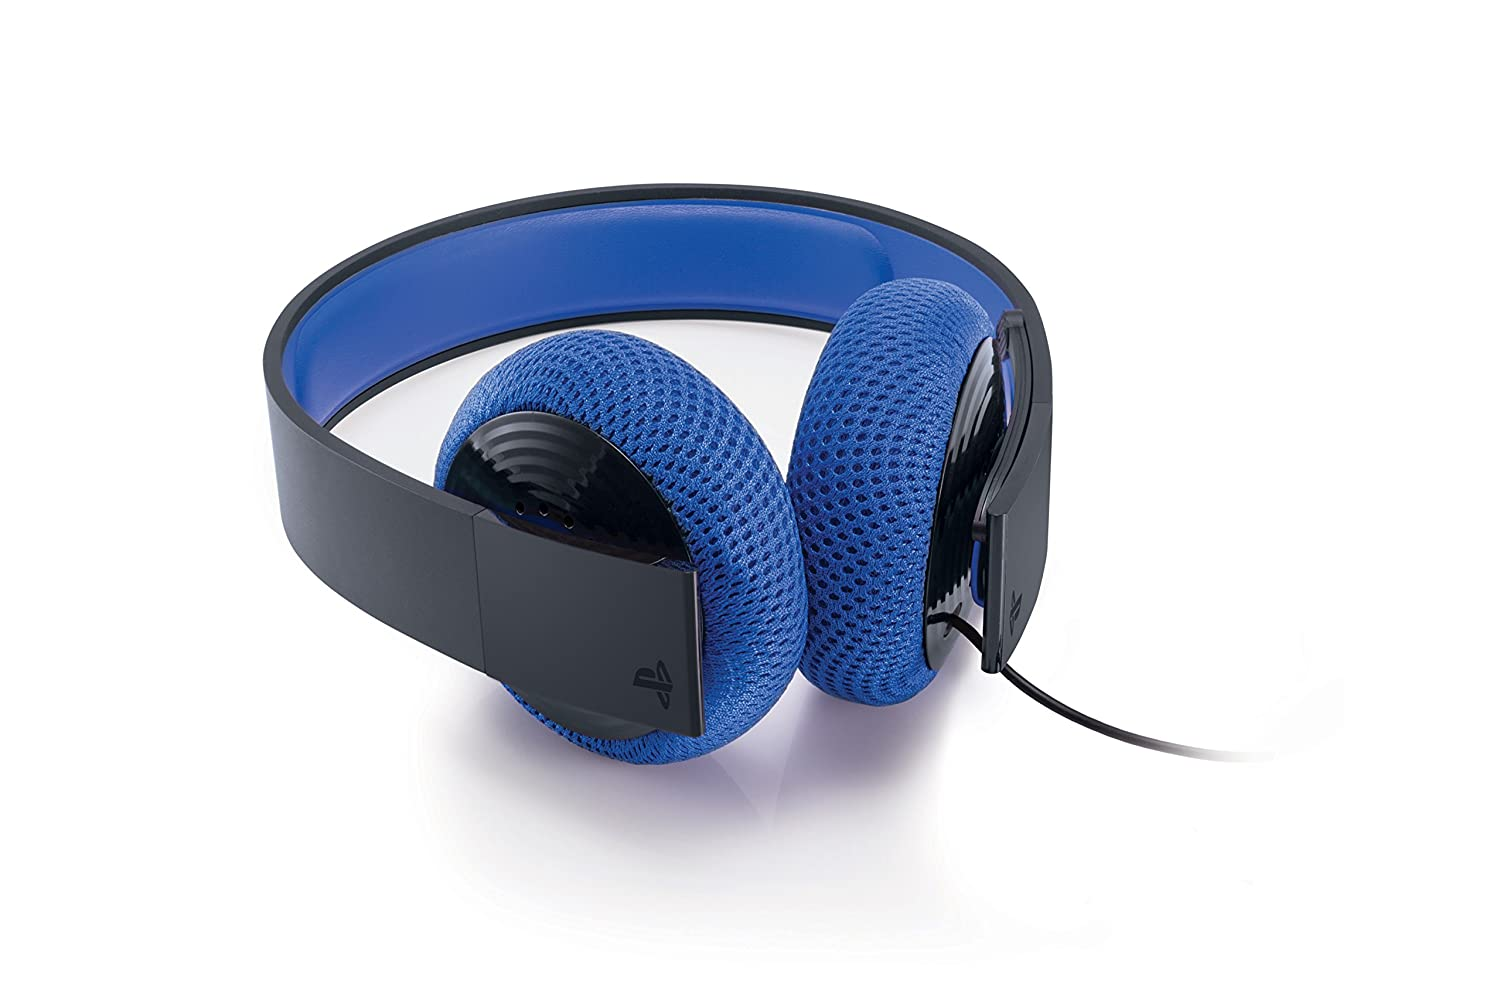 playstation silver wired stereo headset vs gold wireless stereo other gaming headset features